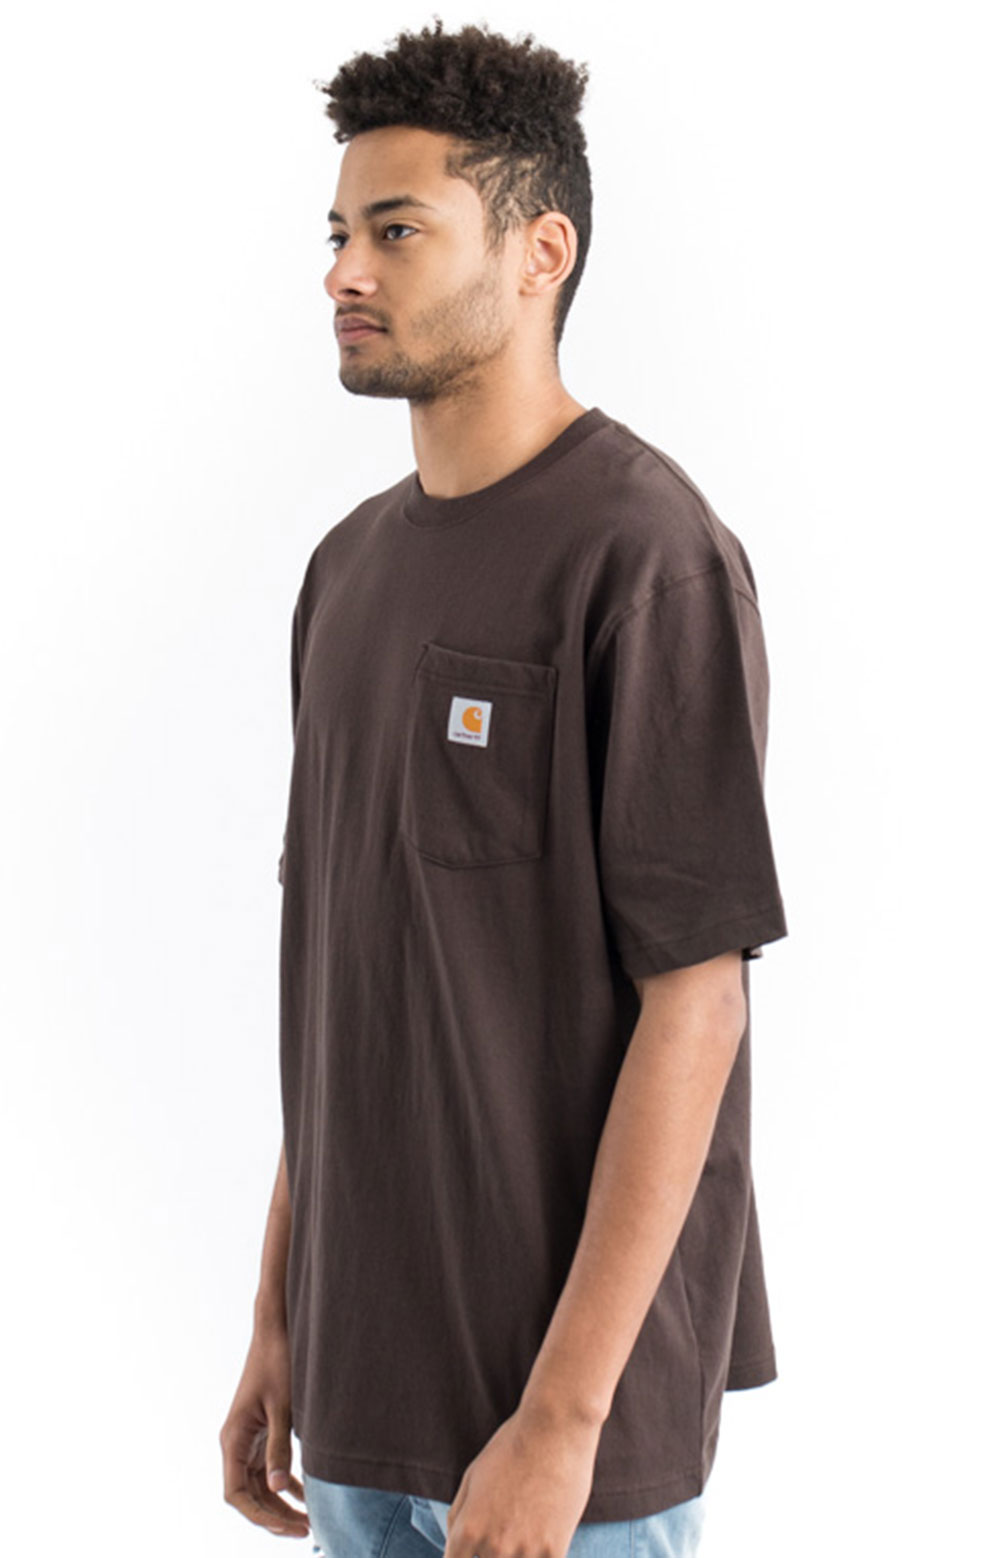 (K87) Workwear Pocket T-Shirt - Dark Brown 2